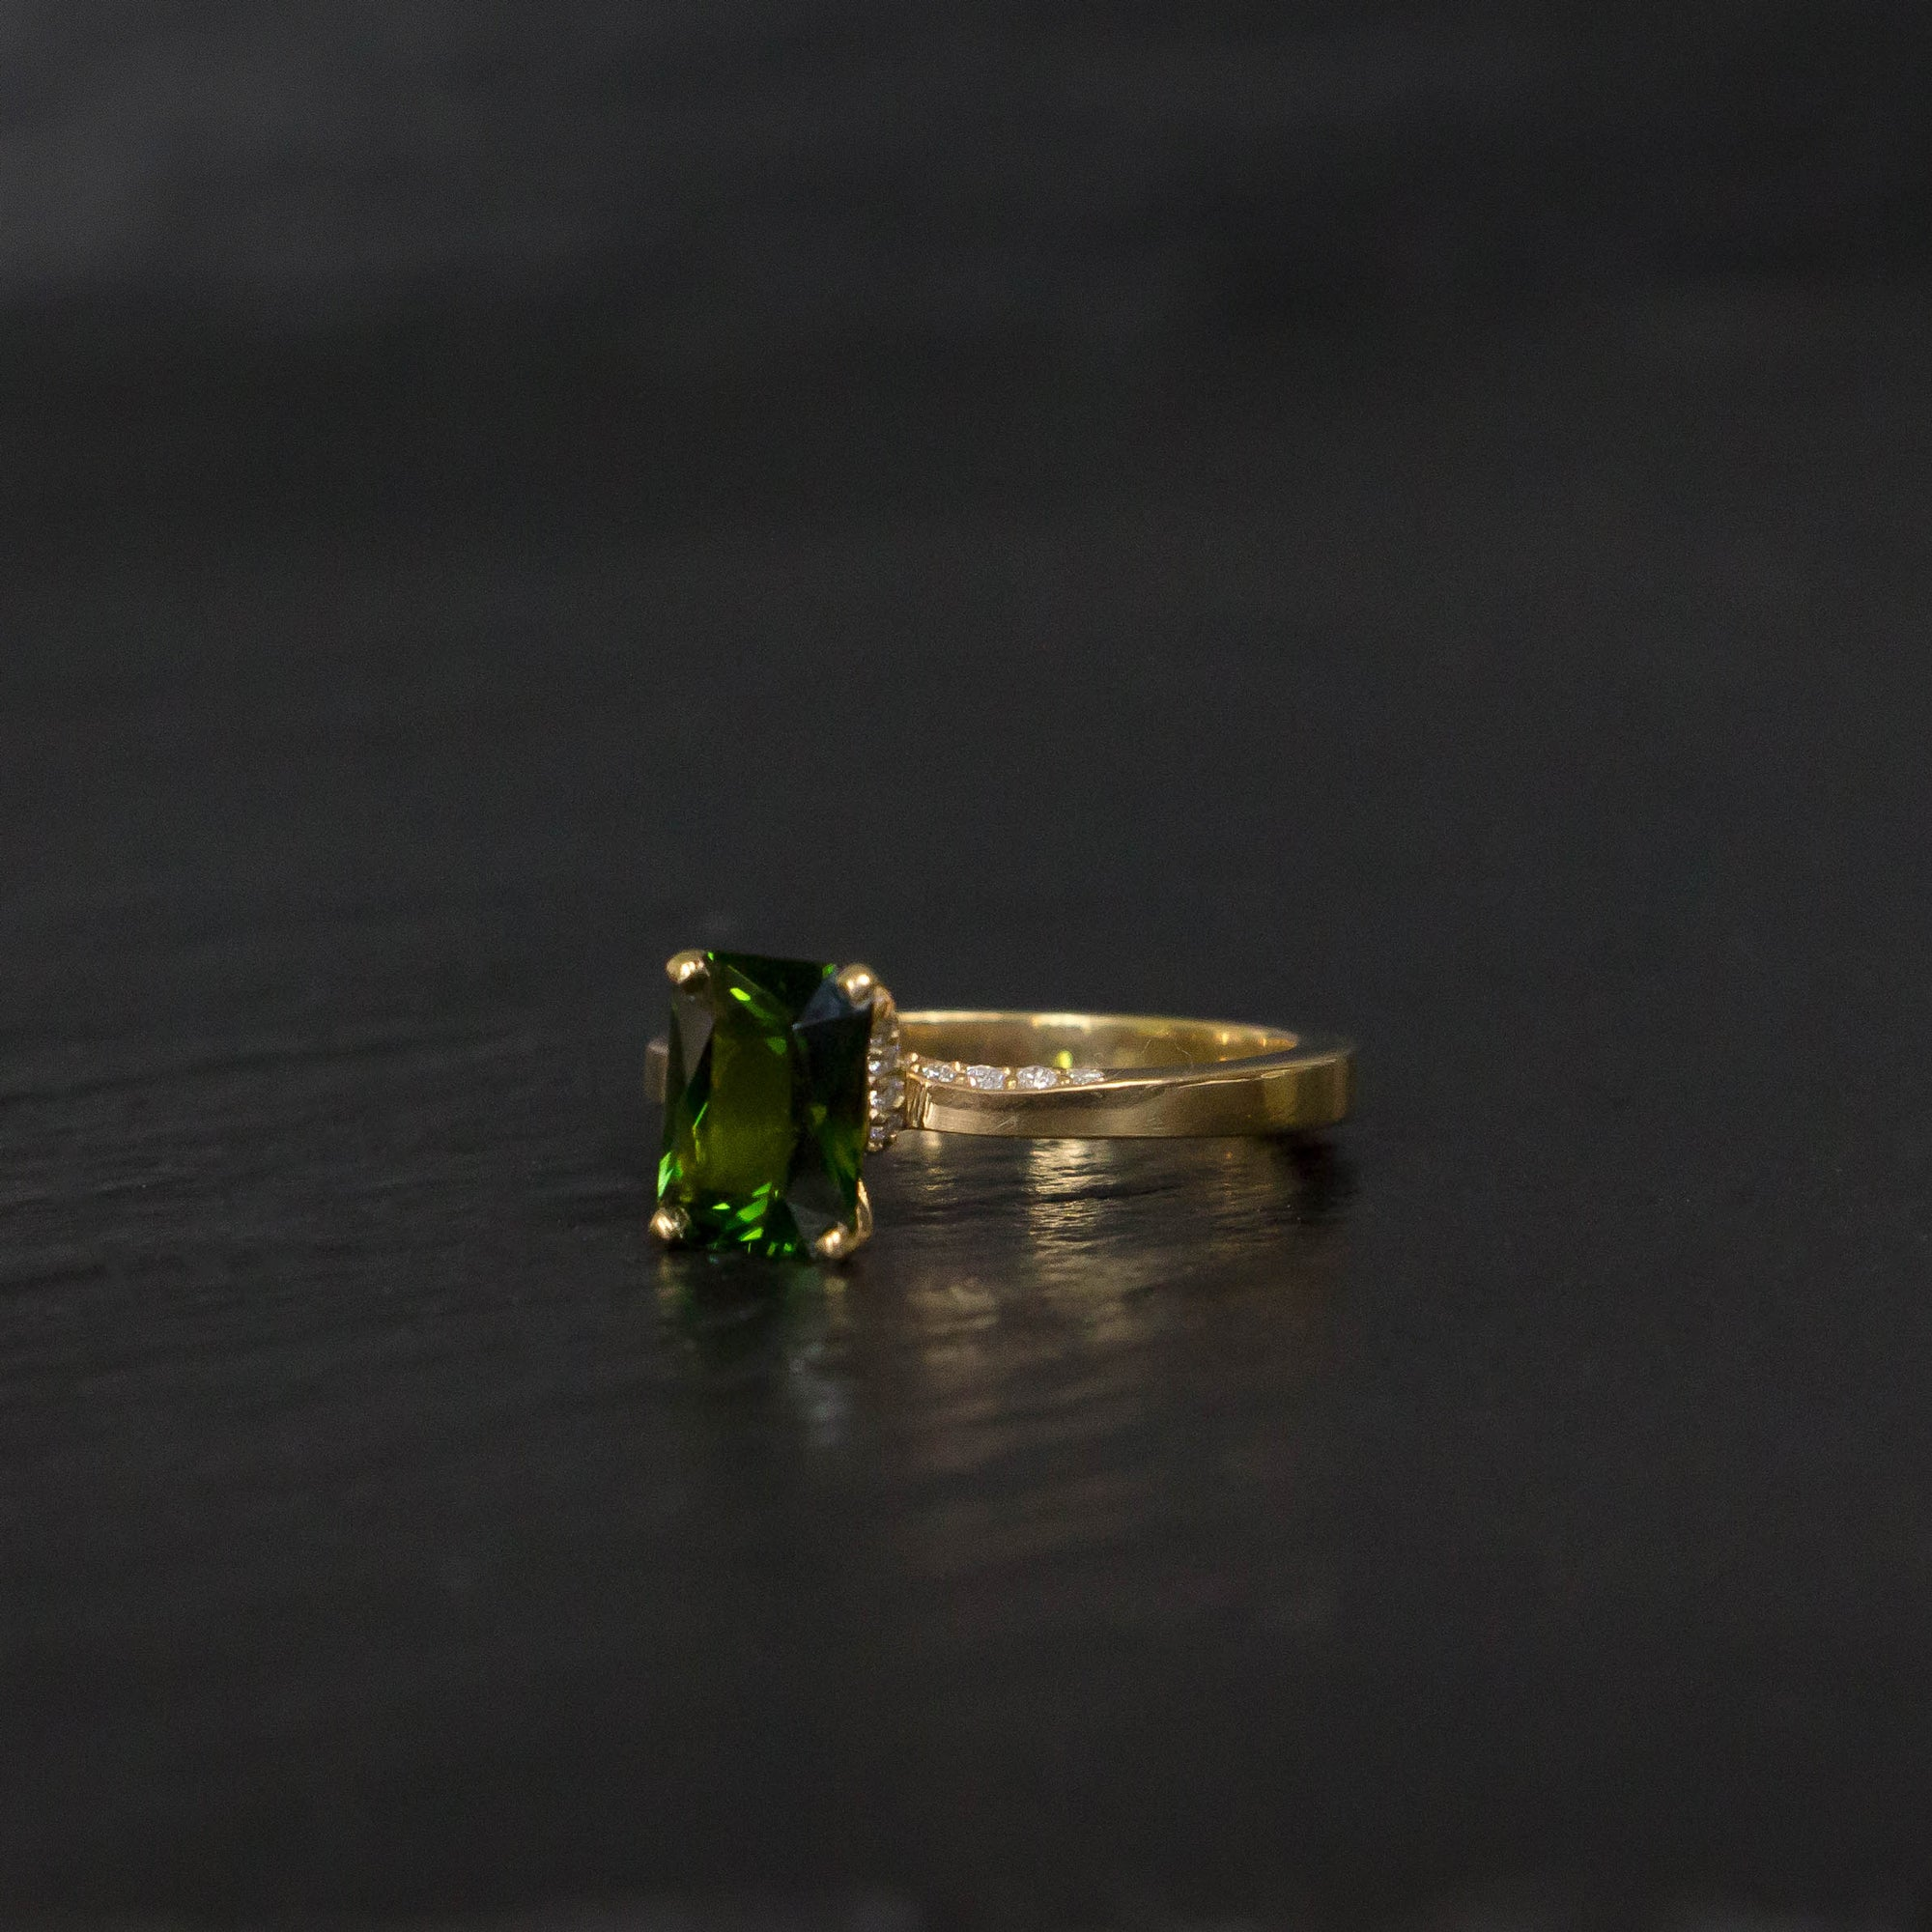 Green tourmaline engagement ring n yellow gold with diamonds